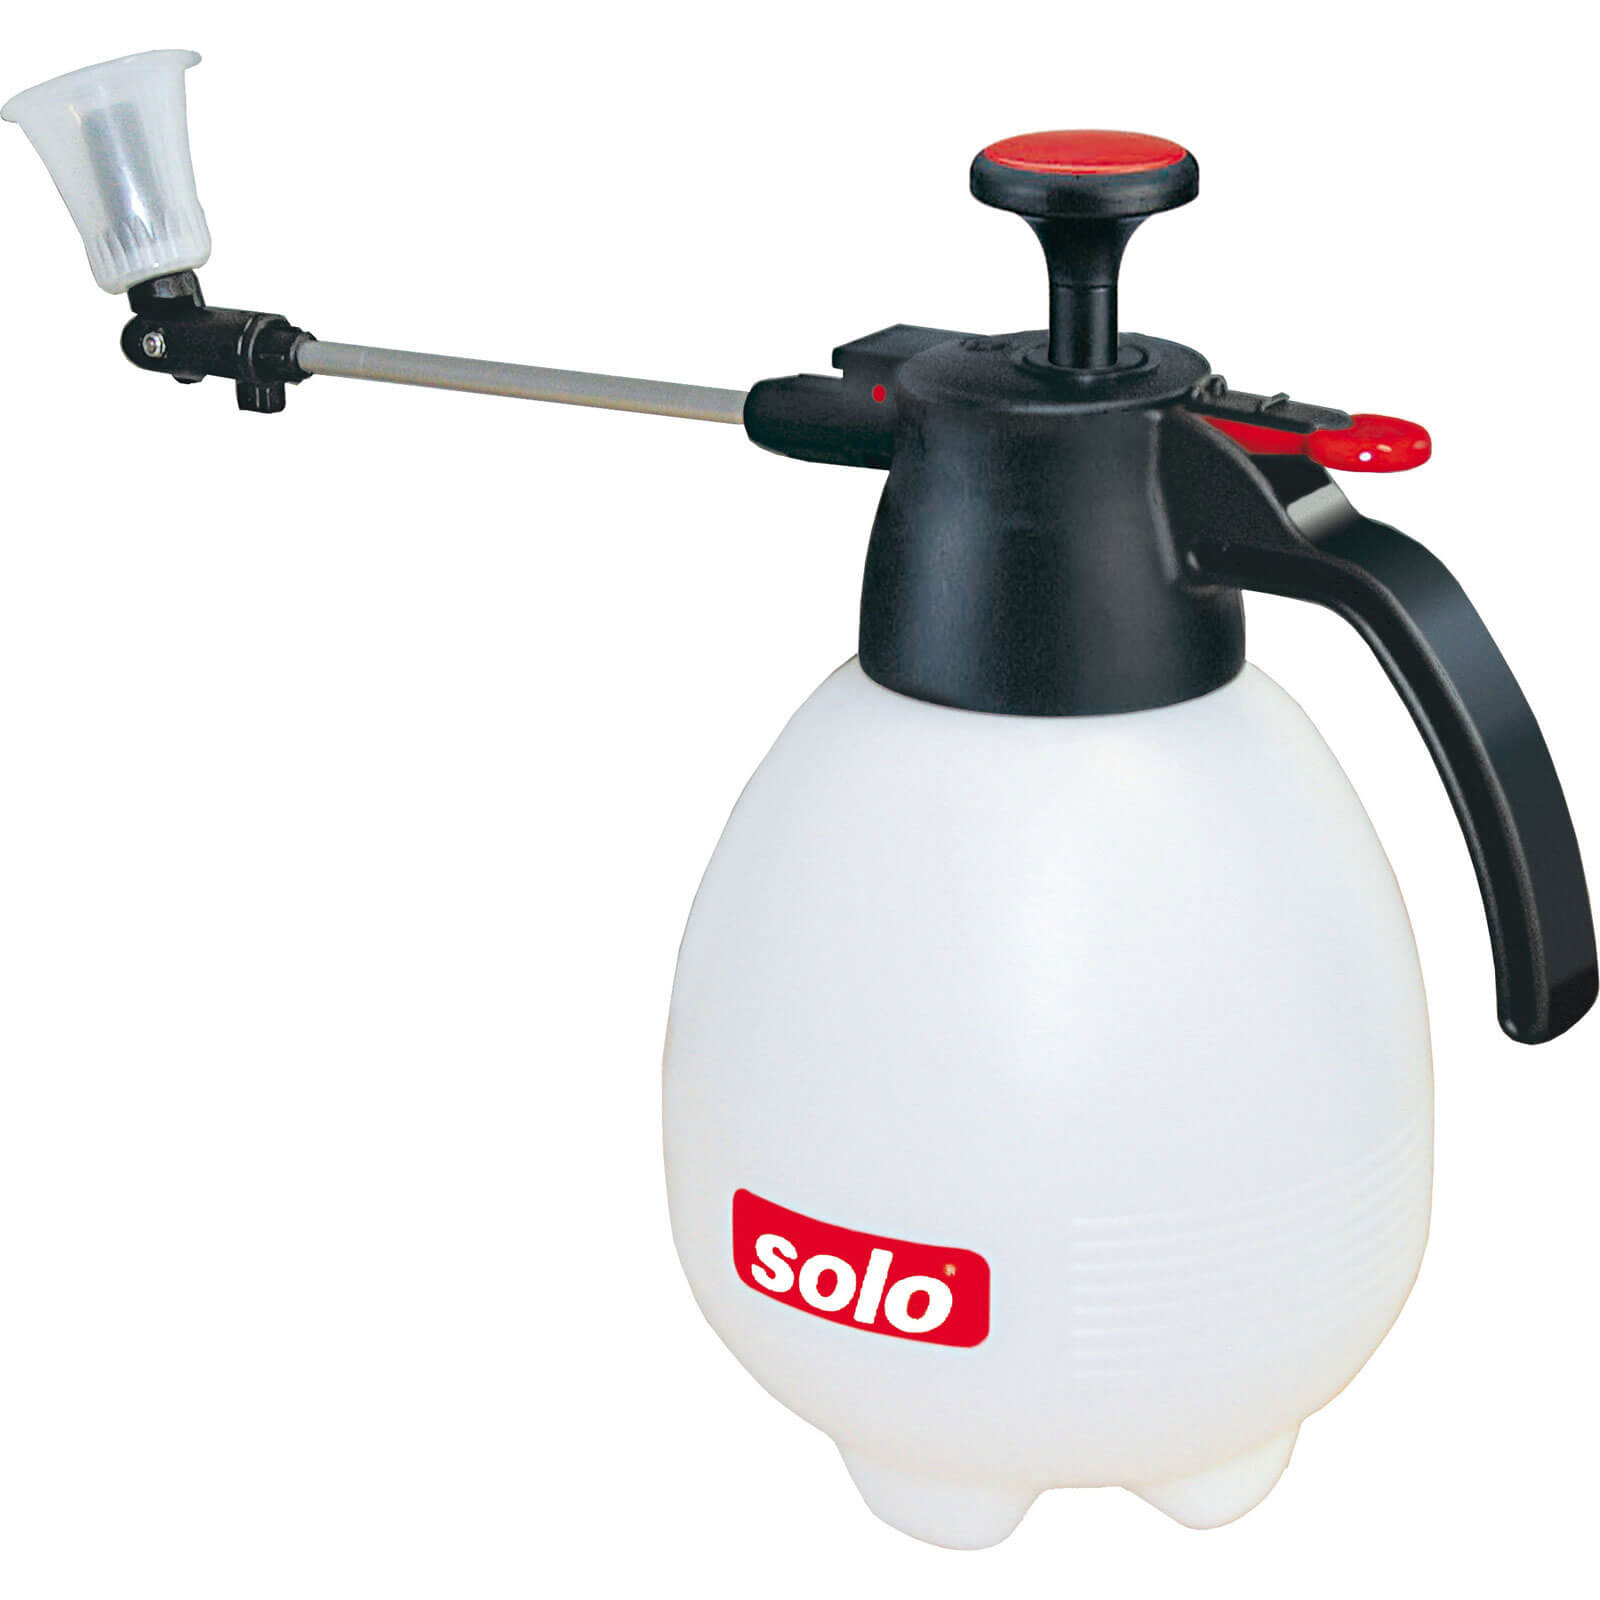 Image of Solo 401 COMFORT Telescopic Chemical & Water Pressure Sprayer 1l